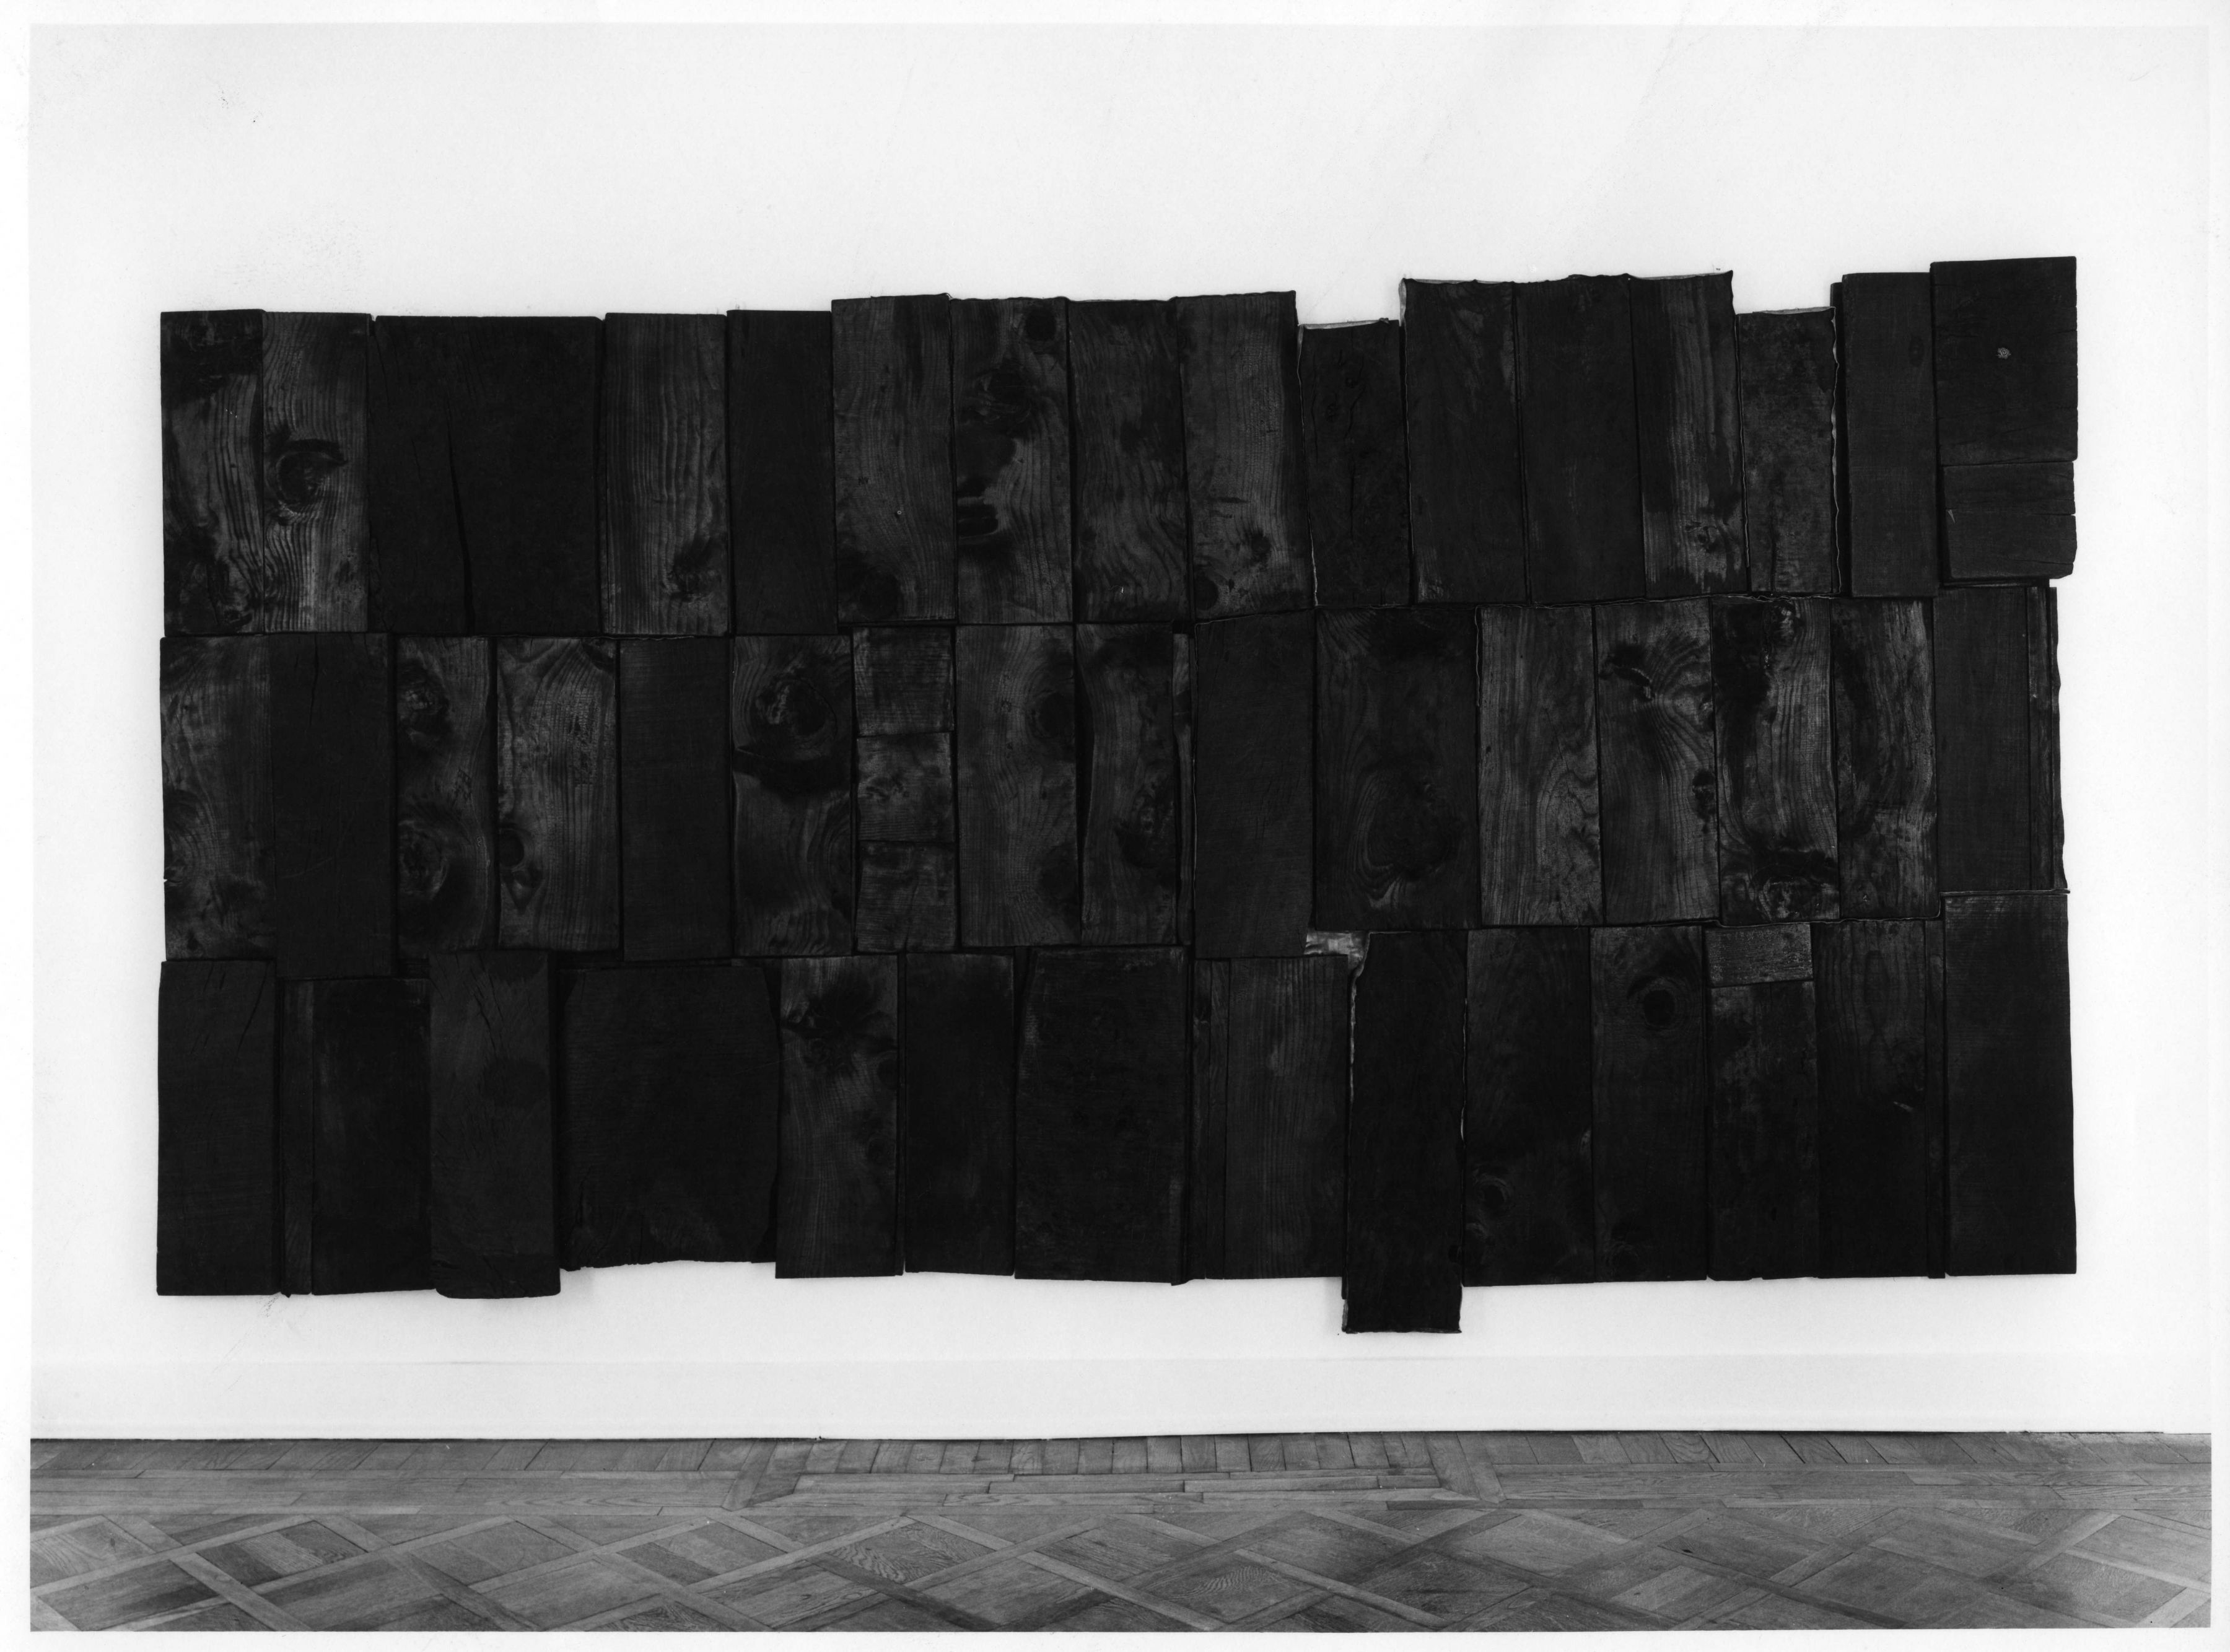 hung sculpture by pier paolo calzolari made of burnt wood panels